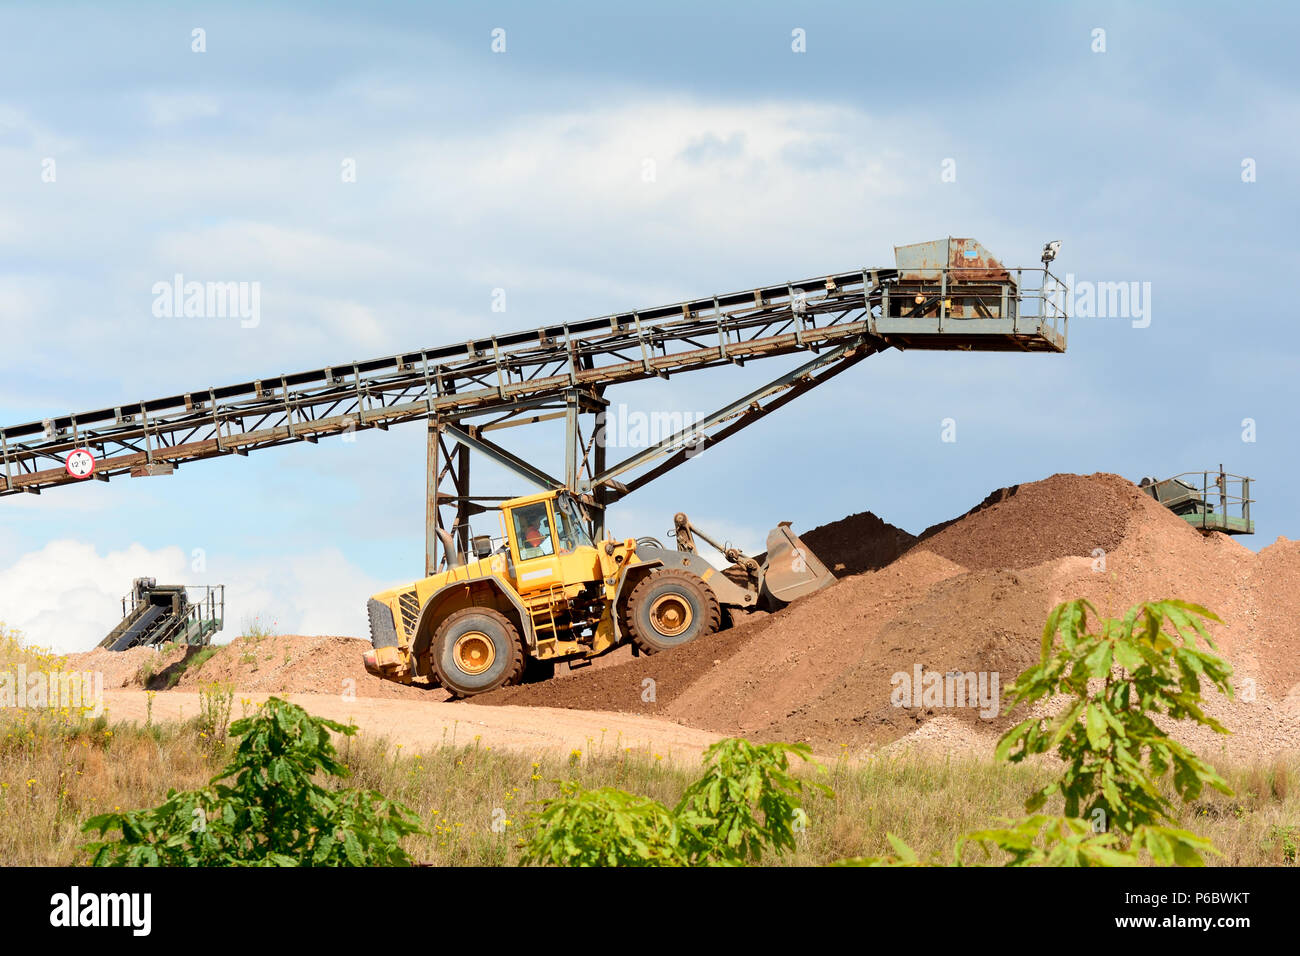 Excavator moving piles of soil into huge mounds from end of